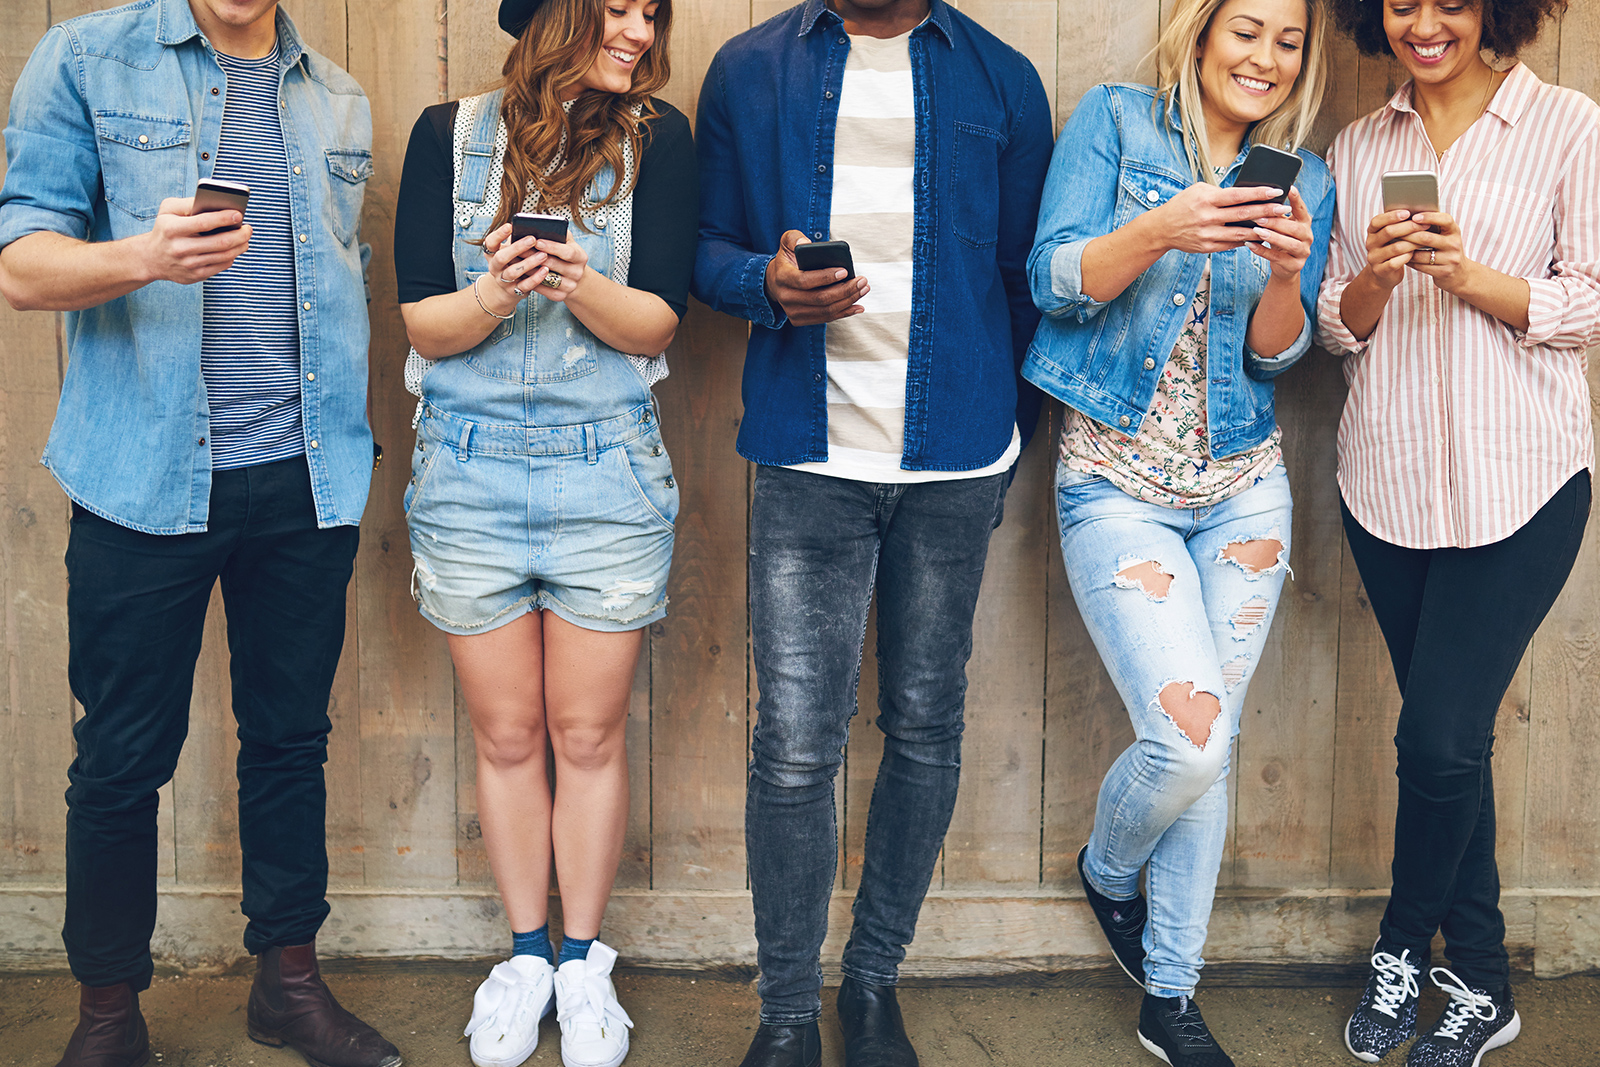 6 Digital Marketing Trends to Watch Out For in 2018